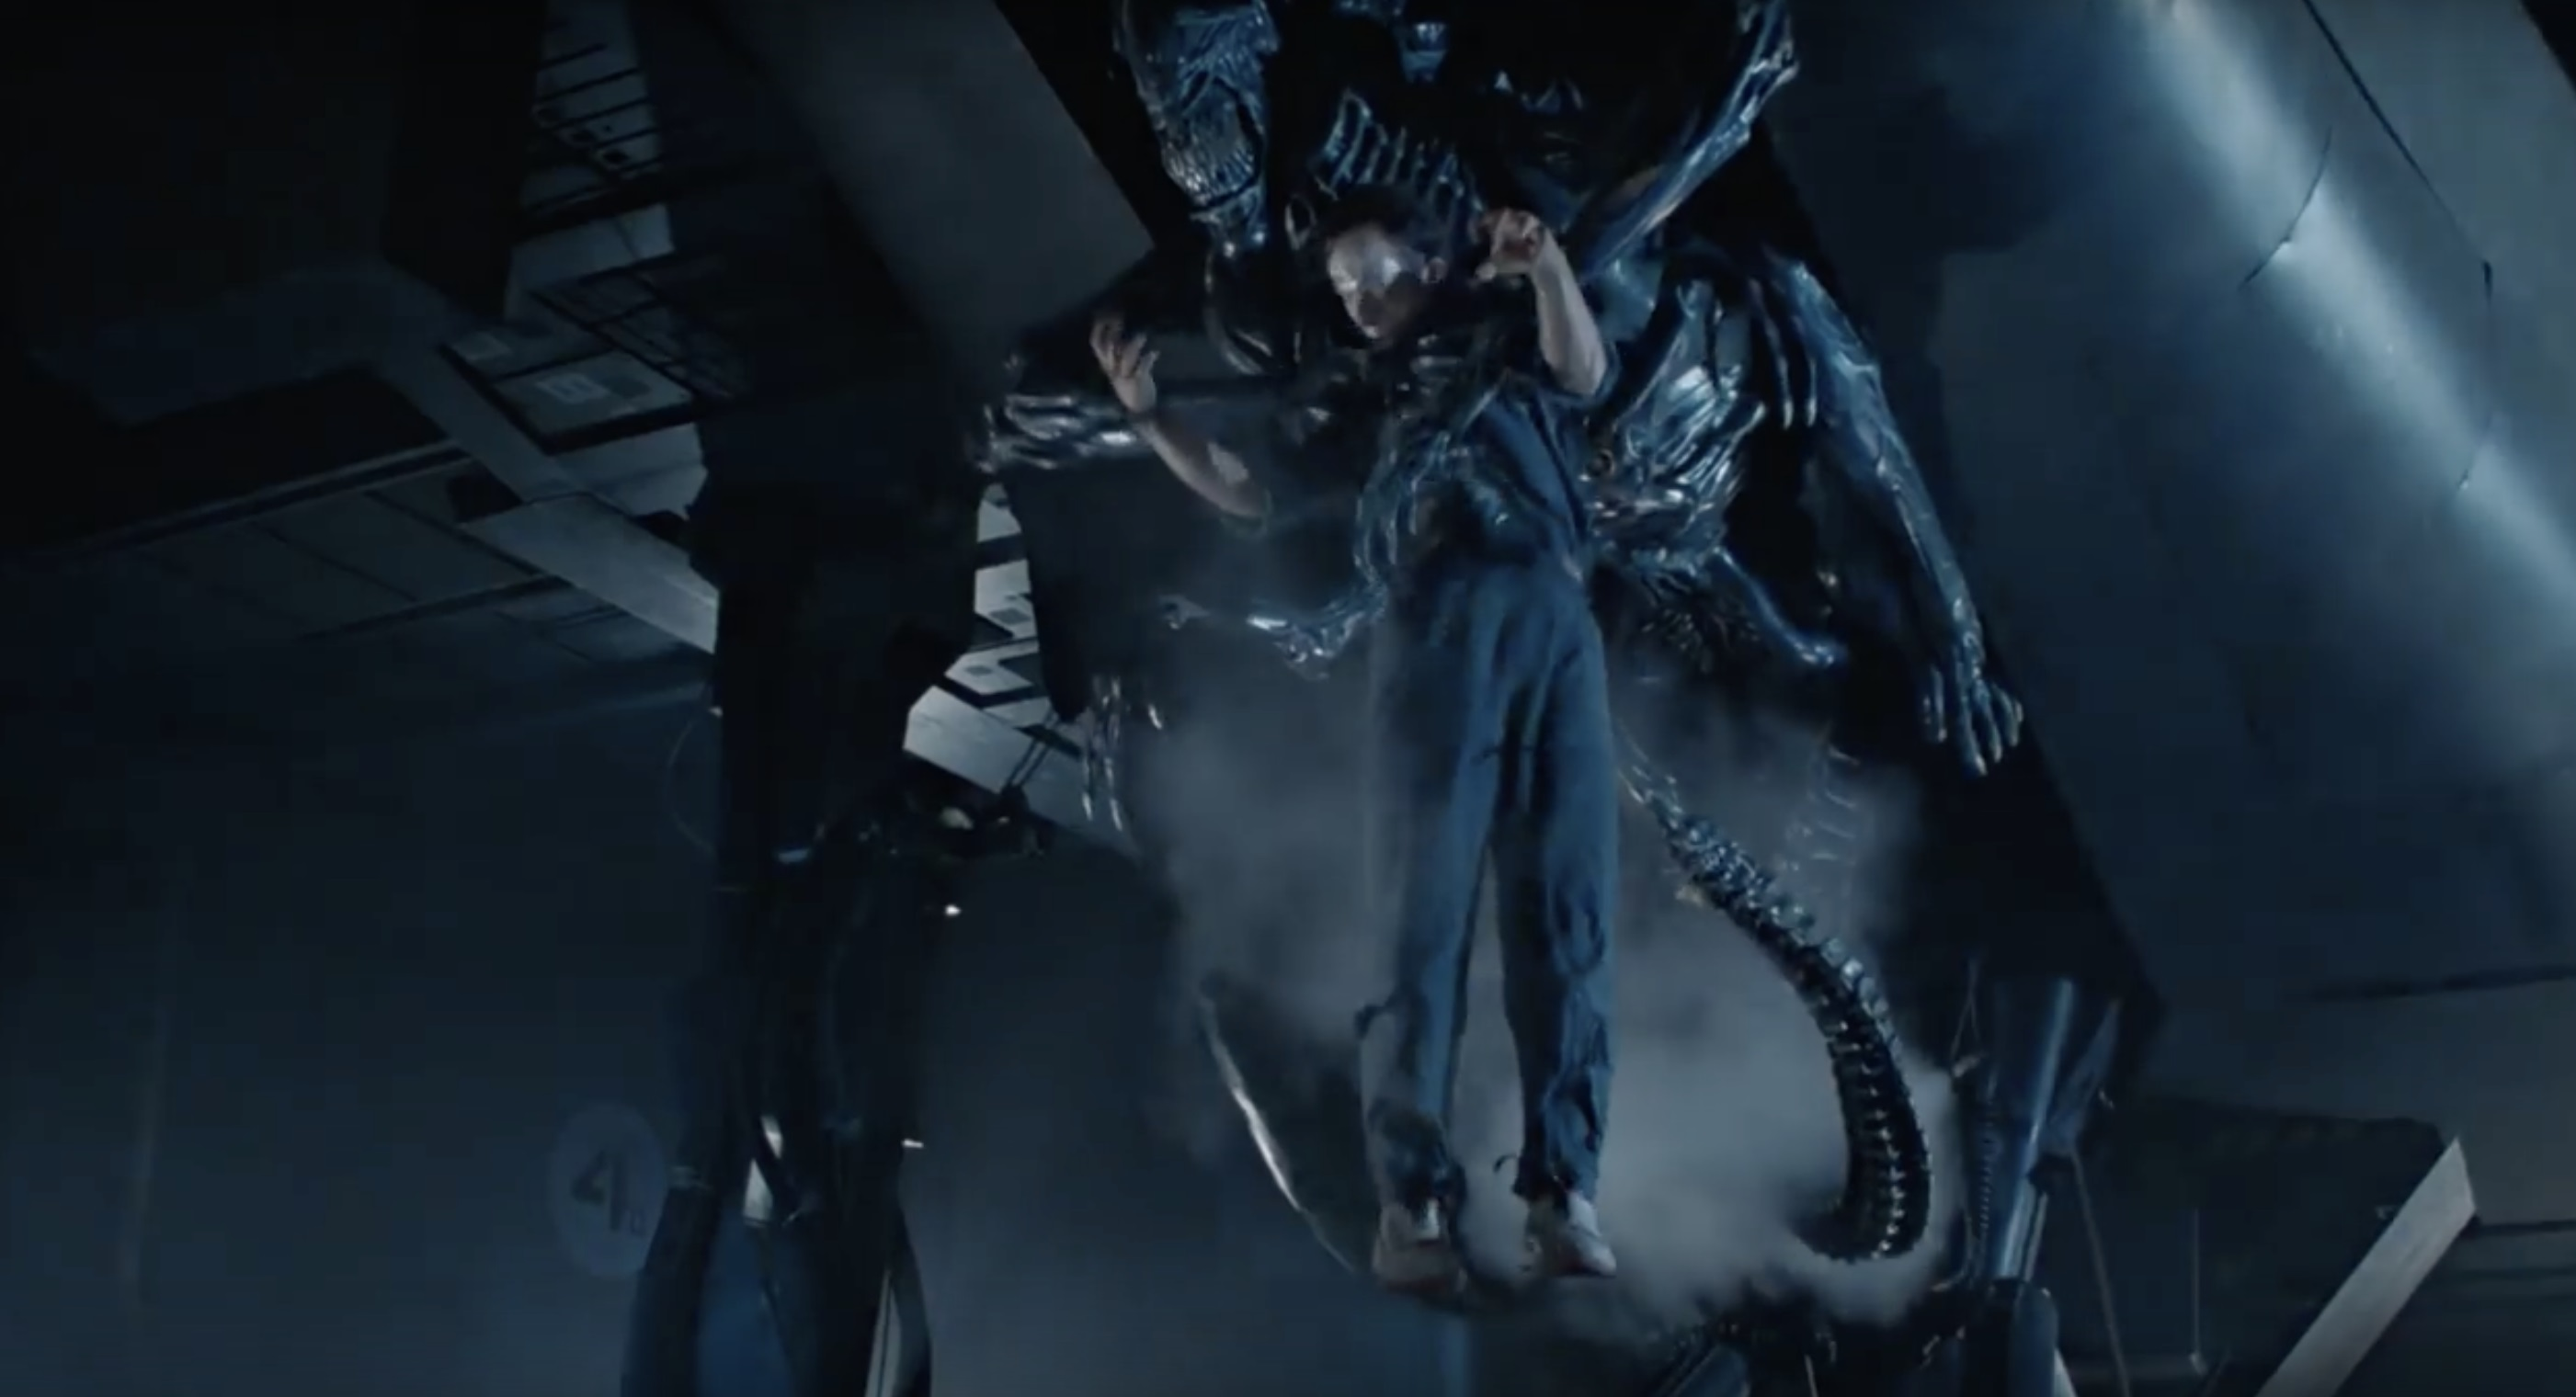 3D Realms was making an Aliens game in the vein of Left 4 Dead screenshot